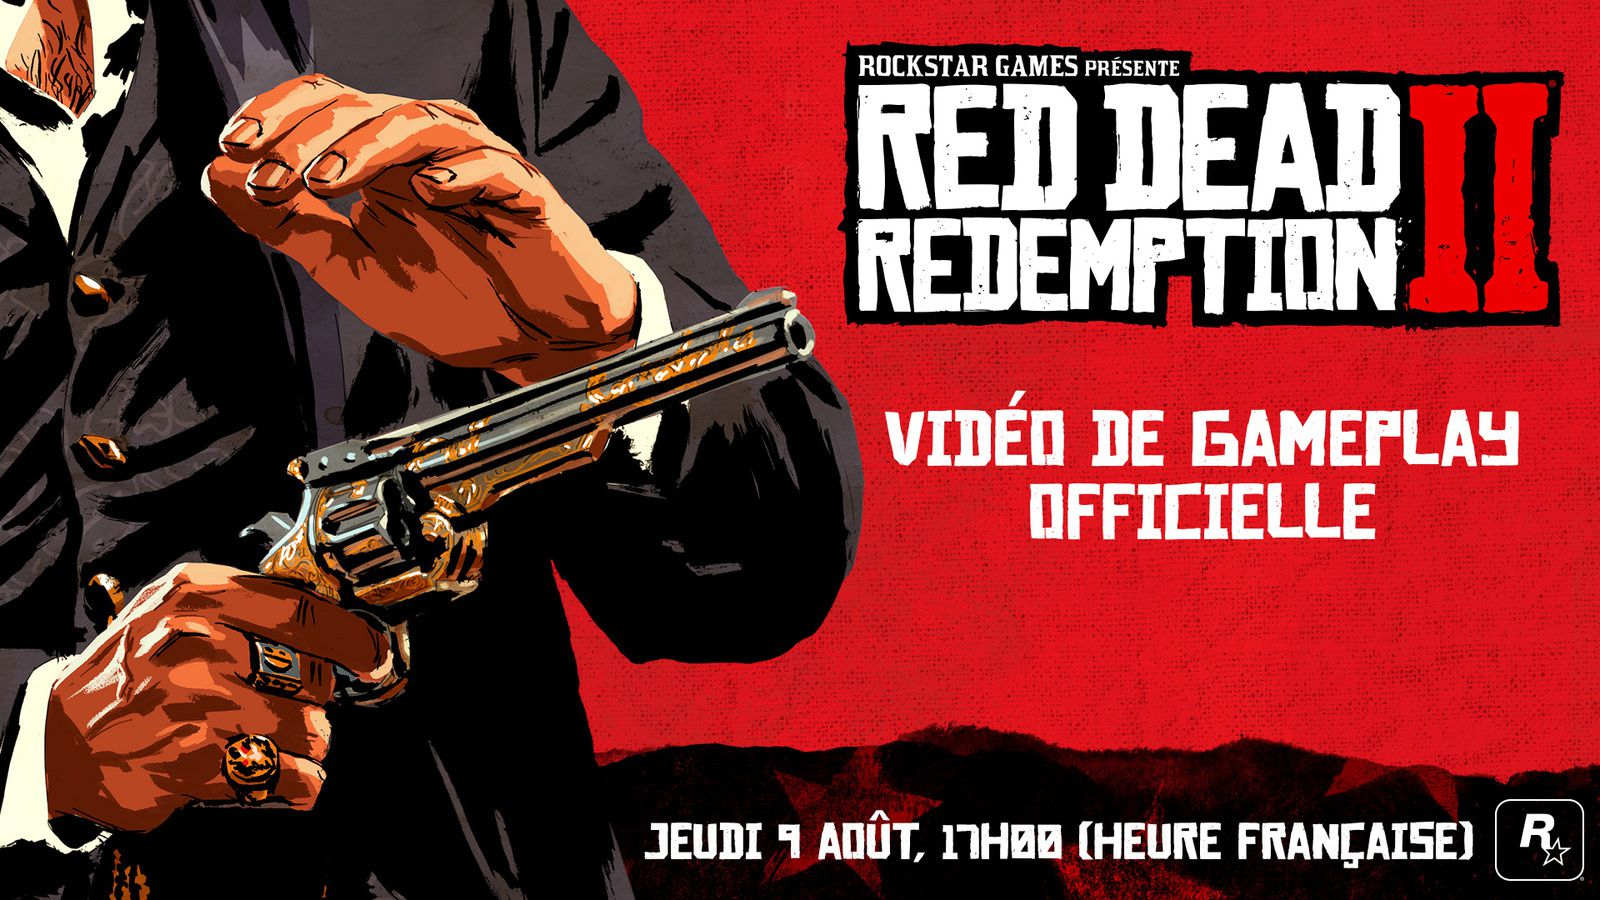 #Evenement #RDR2 - VIDÉO DE GAMEPLAY OFFICIELLE DE RED DEAD REDEMPTION 2 !